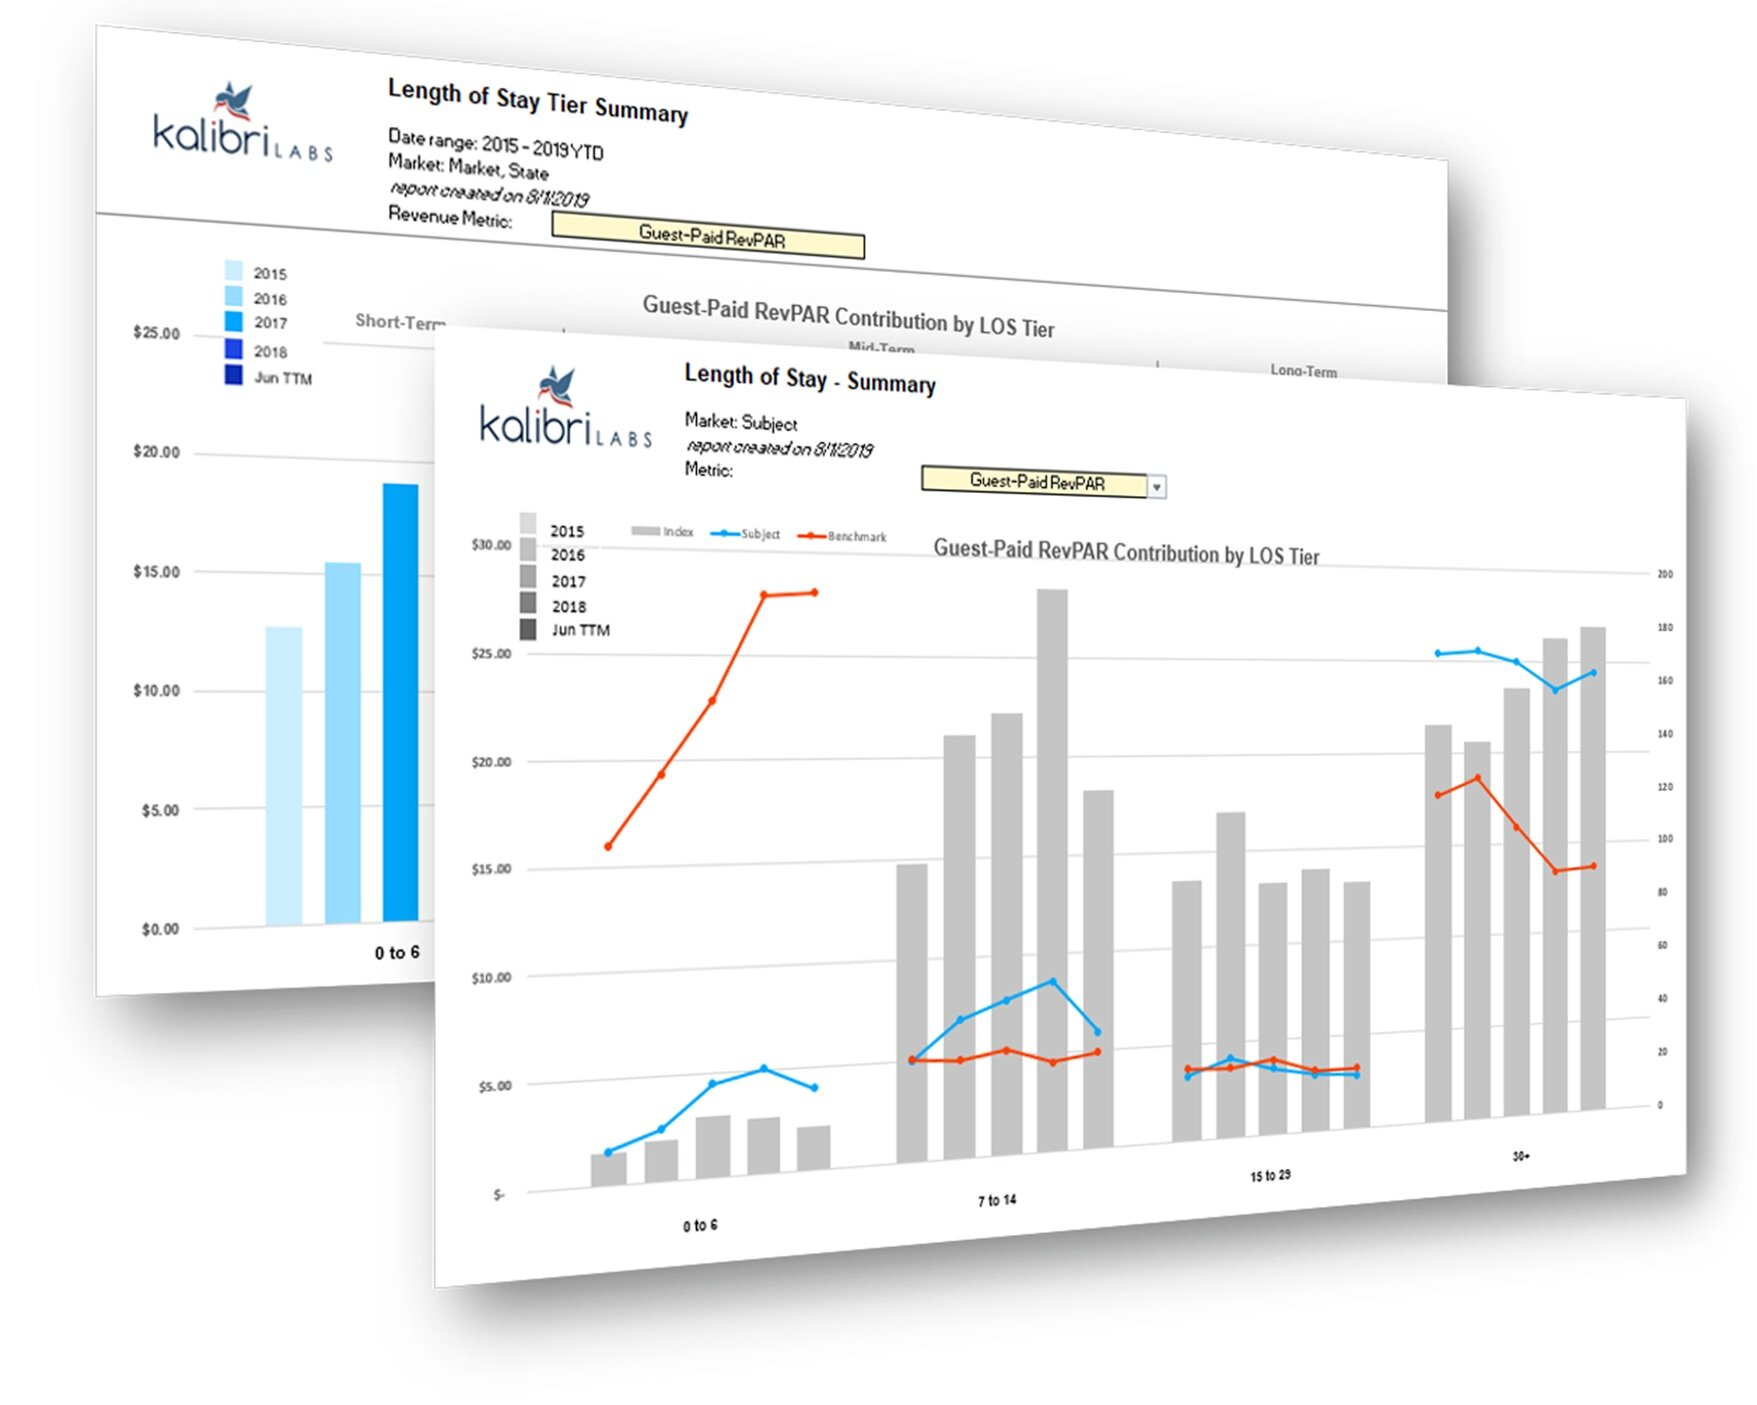 Order a Length of Stay Trendline Report to analyze performance by 0-6, 7-14, 15-29, and 30+ length-of-stay tiers to more accurately project extended-stay occupancy and repeatable demand patterns. -